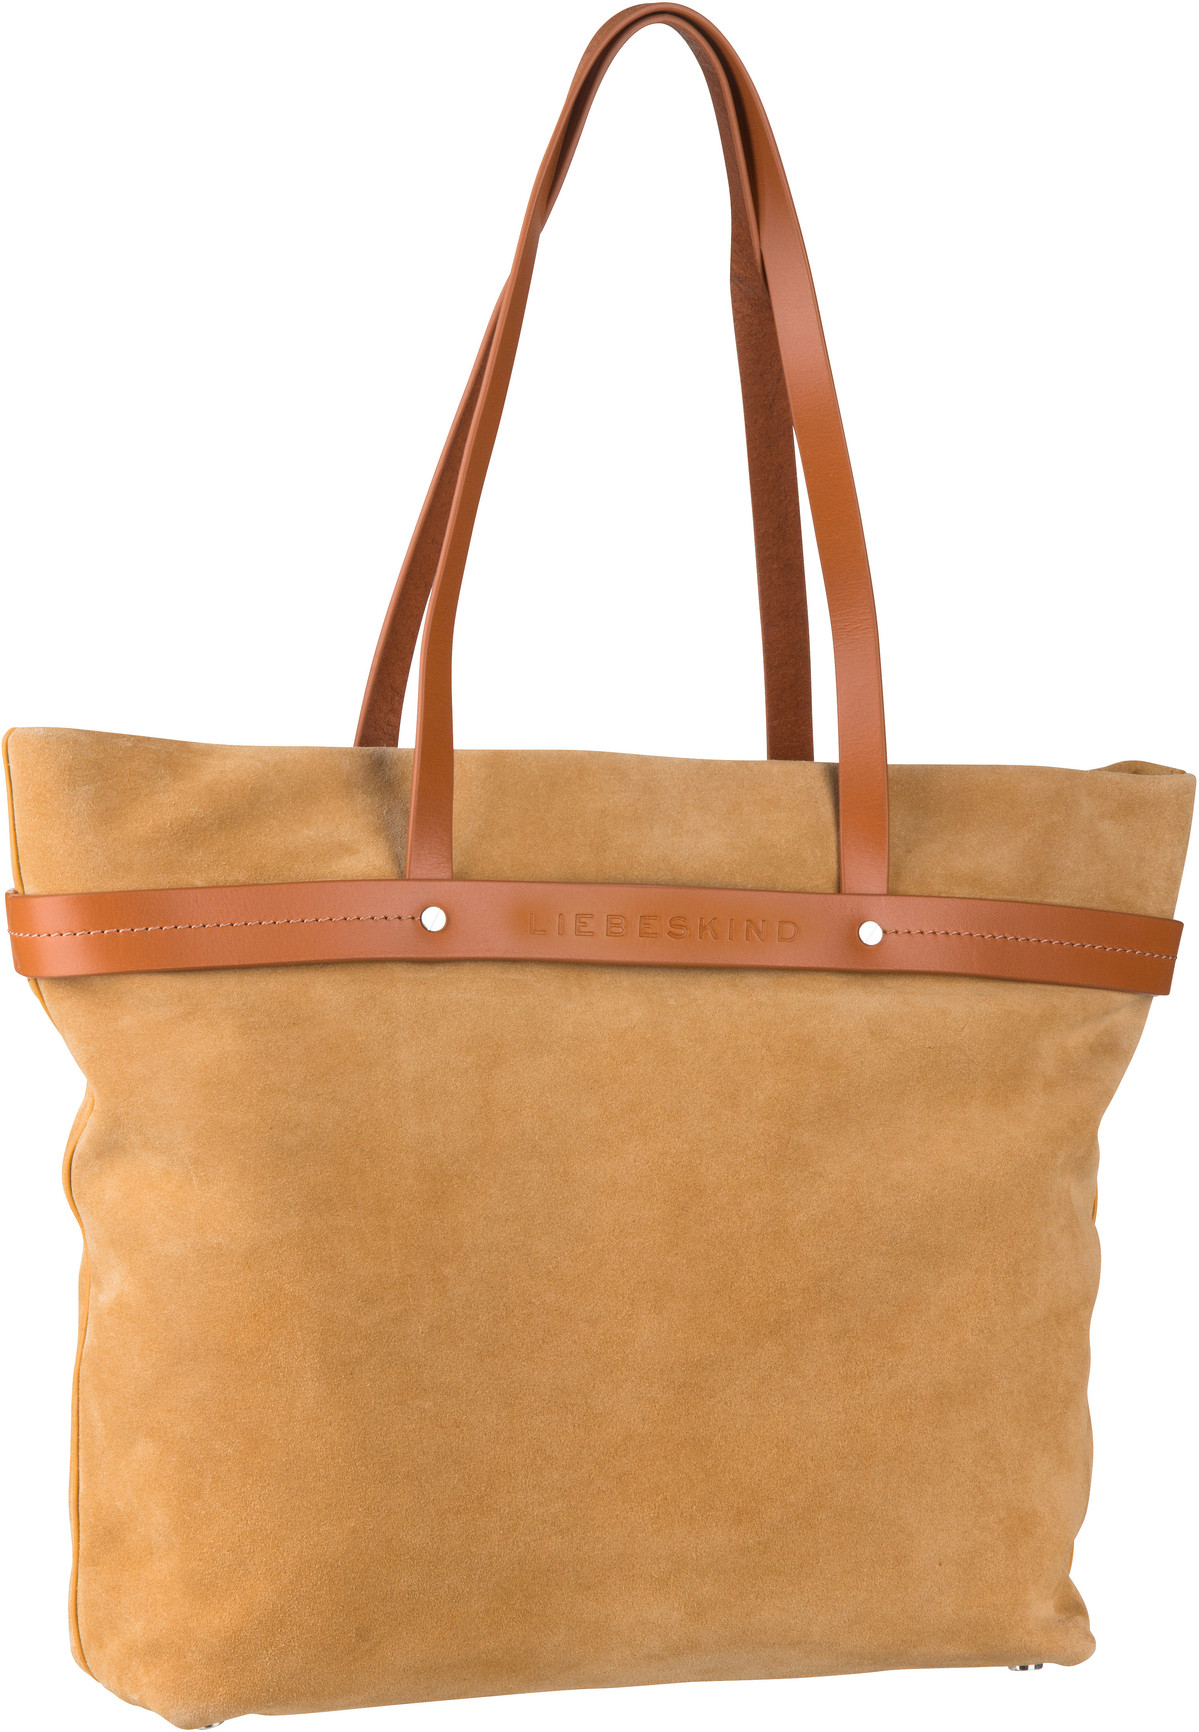 Berlin Shopper SoShopper Shopper L Suede Tawny Yellow